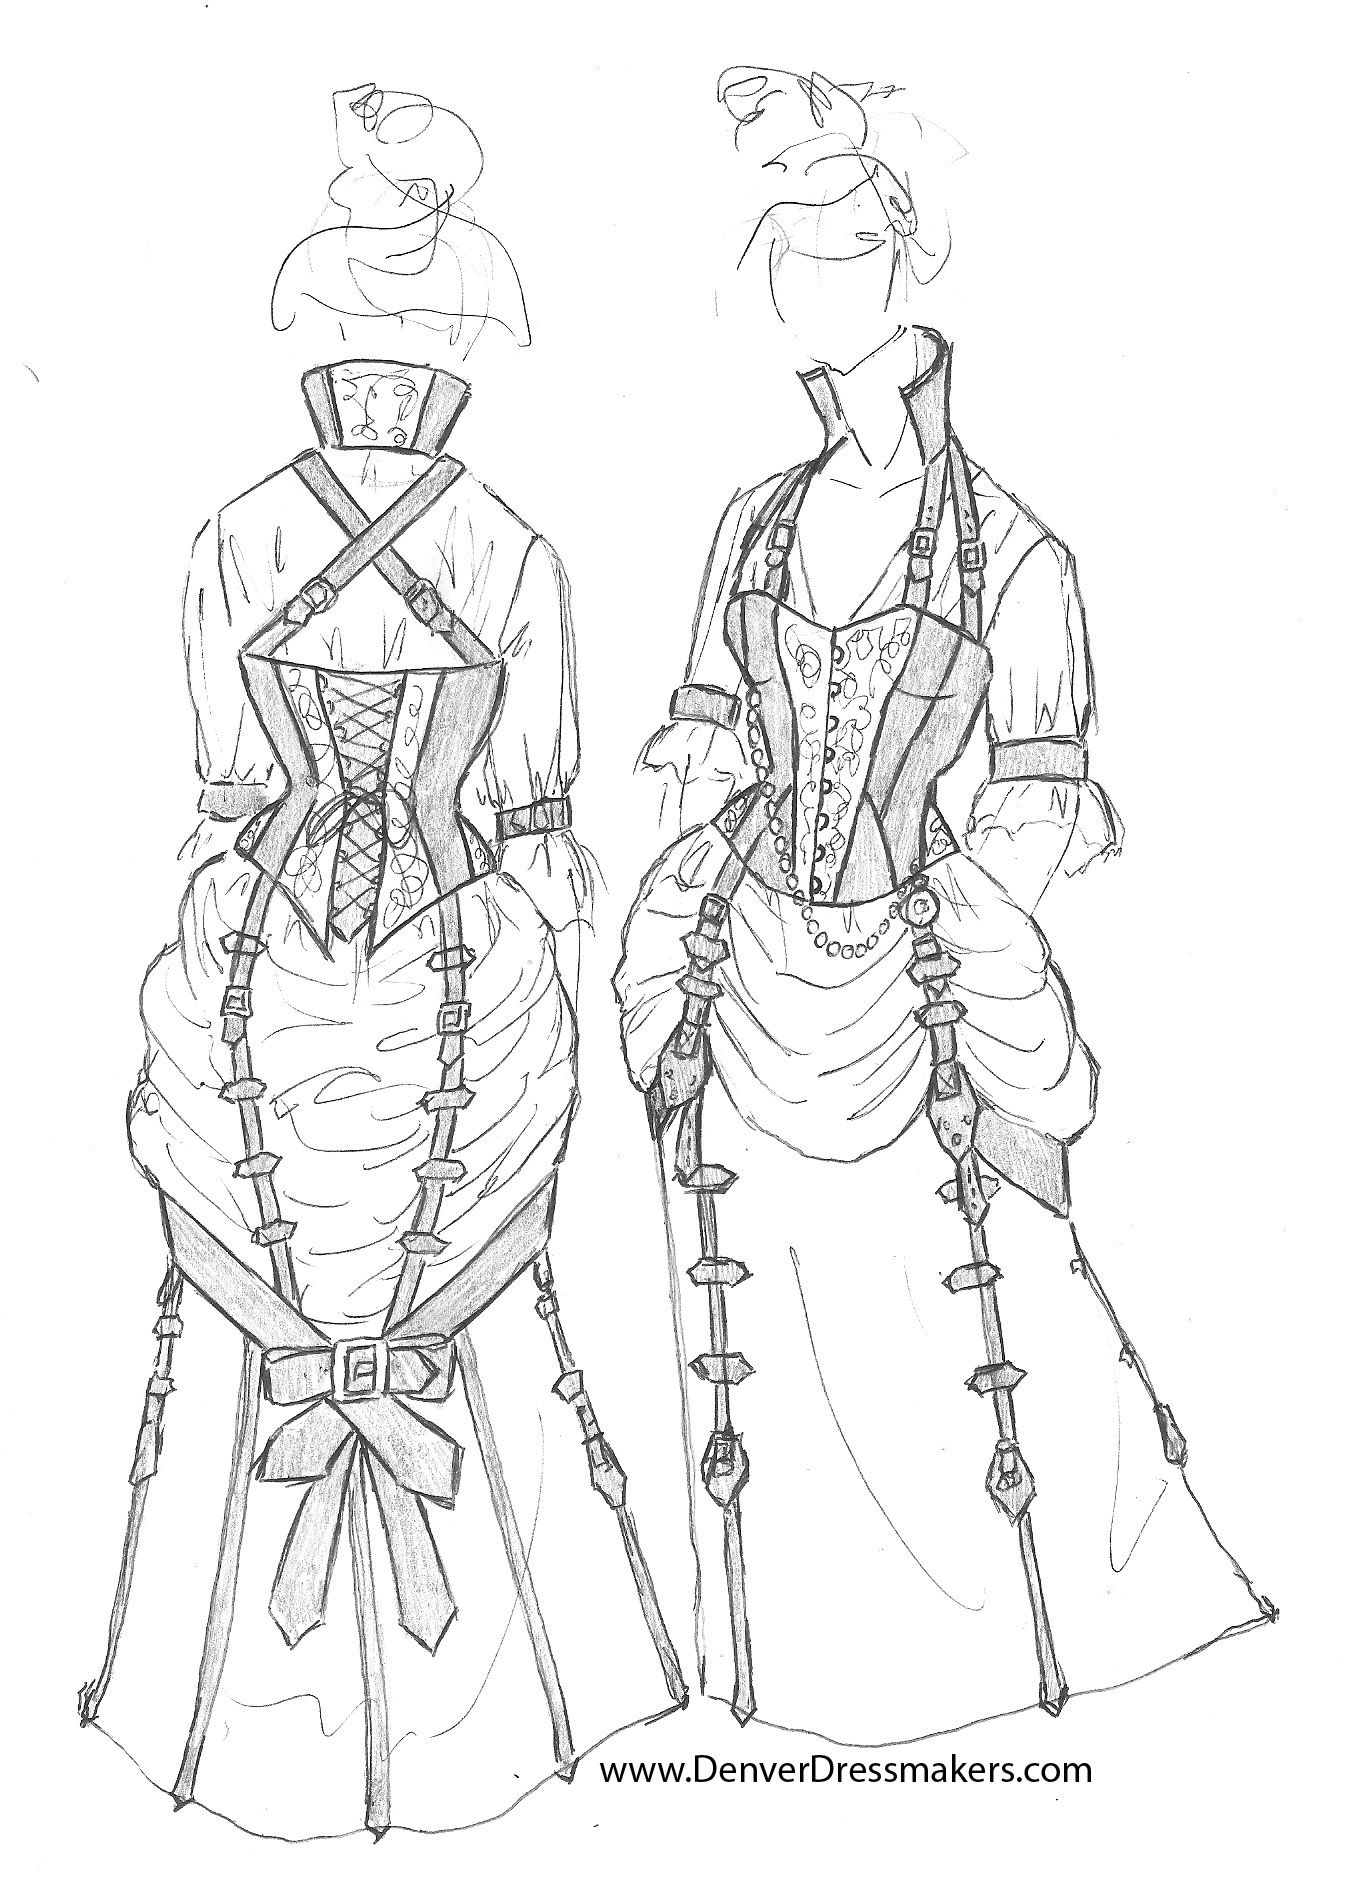 Denver Dressmakers Sketch For A Client Of A Steampunk